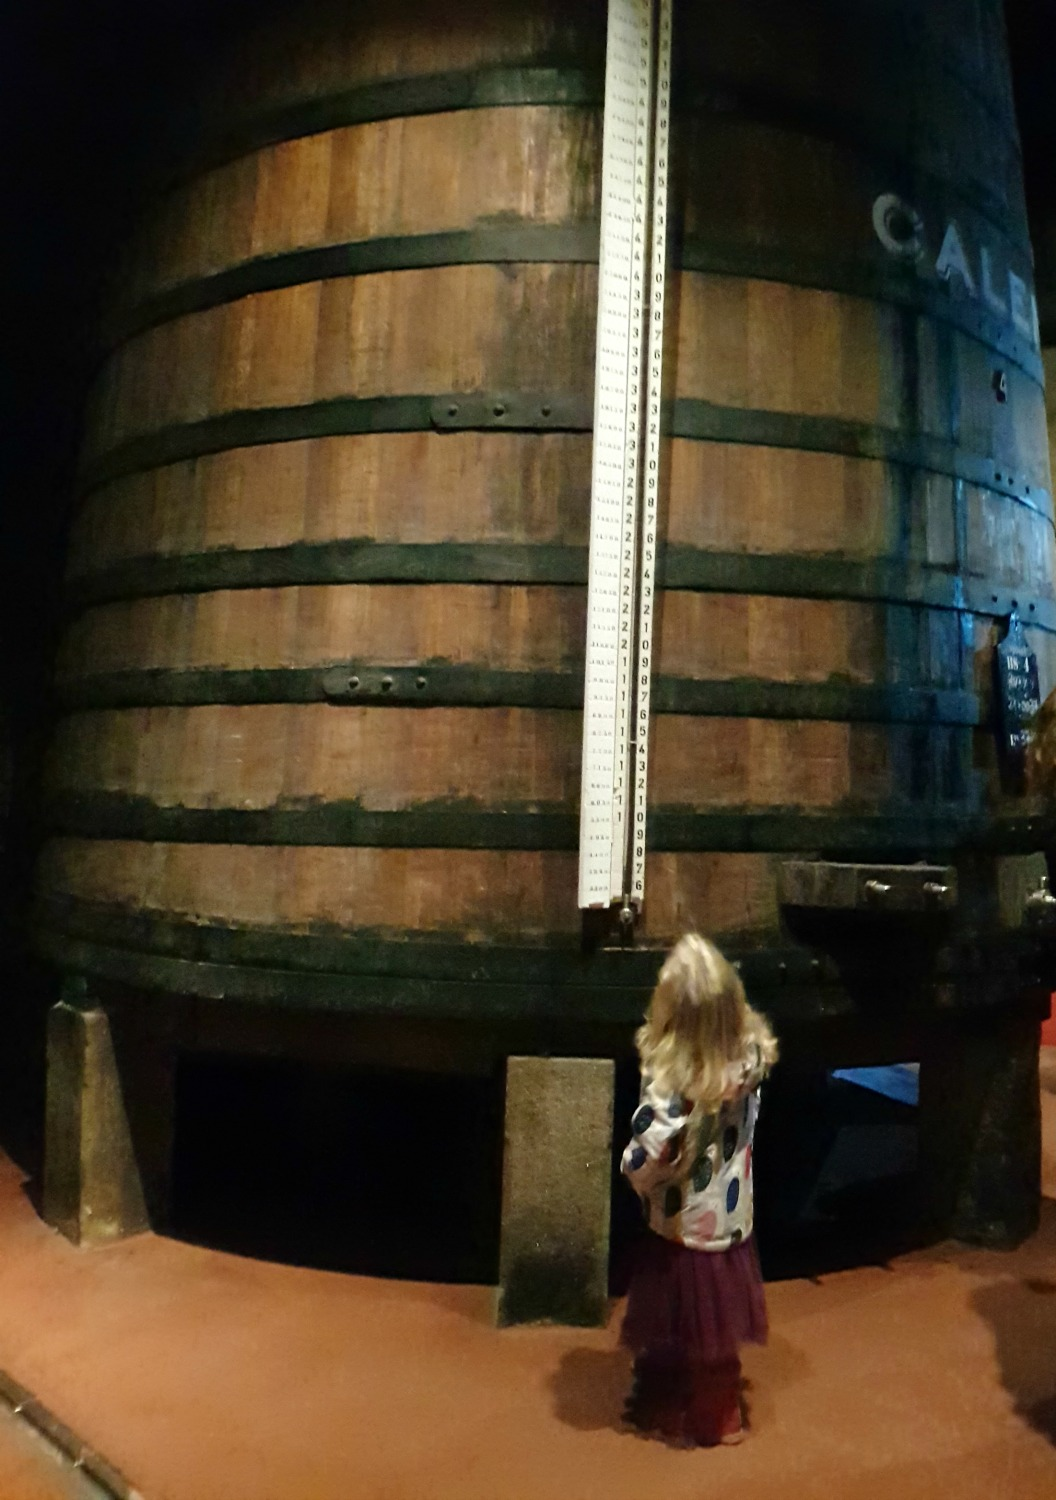 A girl looks at one of the huge port barrels in the cellar at Caves Calem in Vila Nova de Gaia, across the river from Porto - my Porto travel tips and lessons for visiting with kids